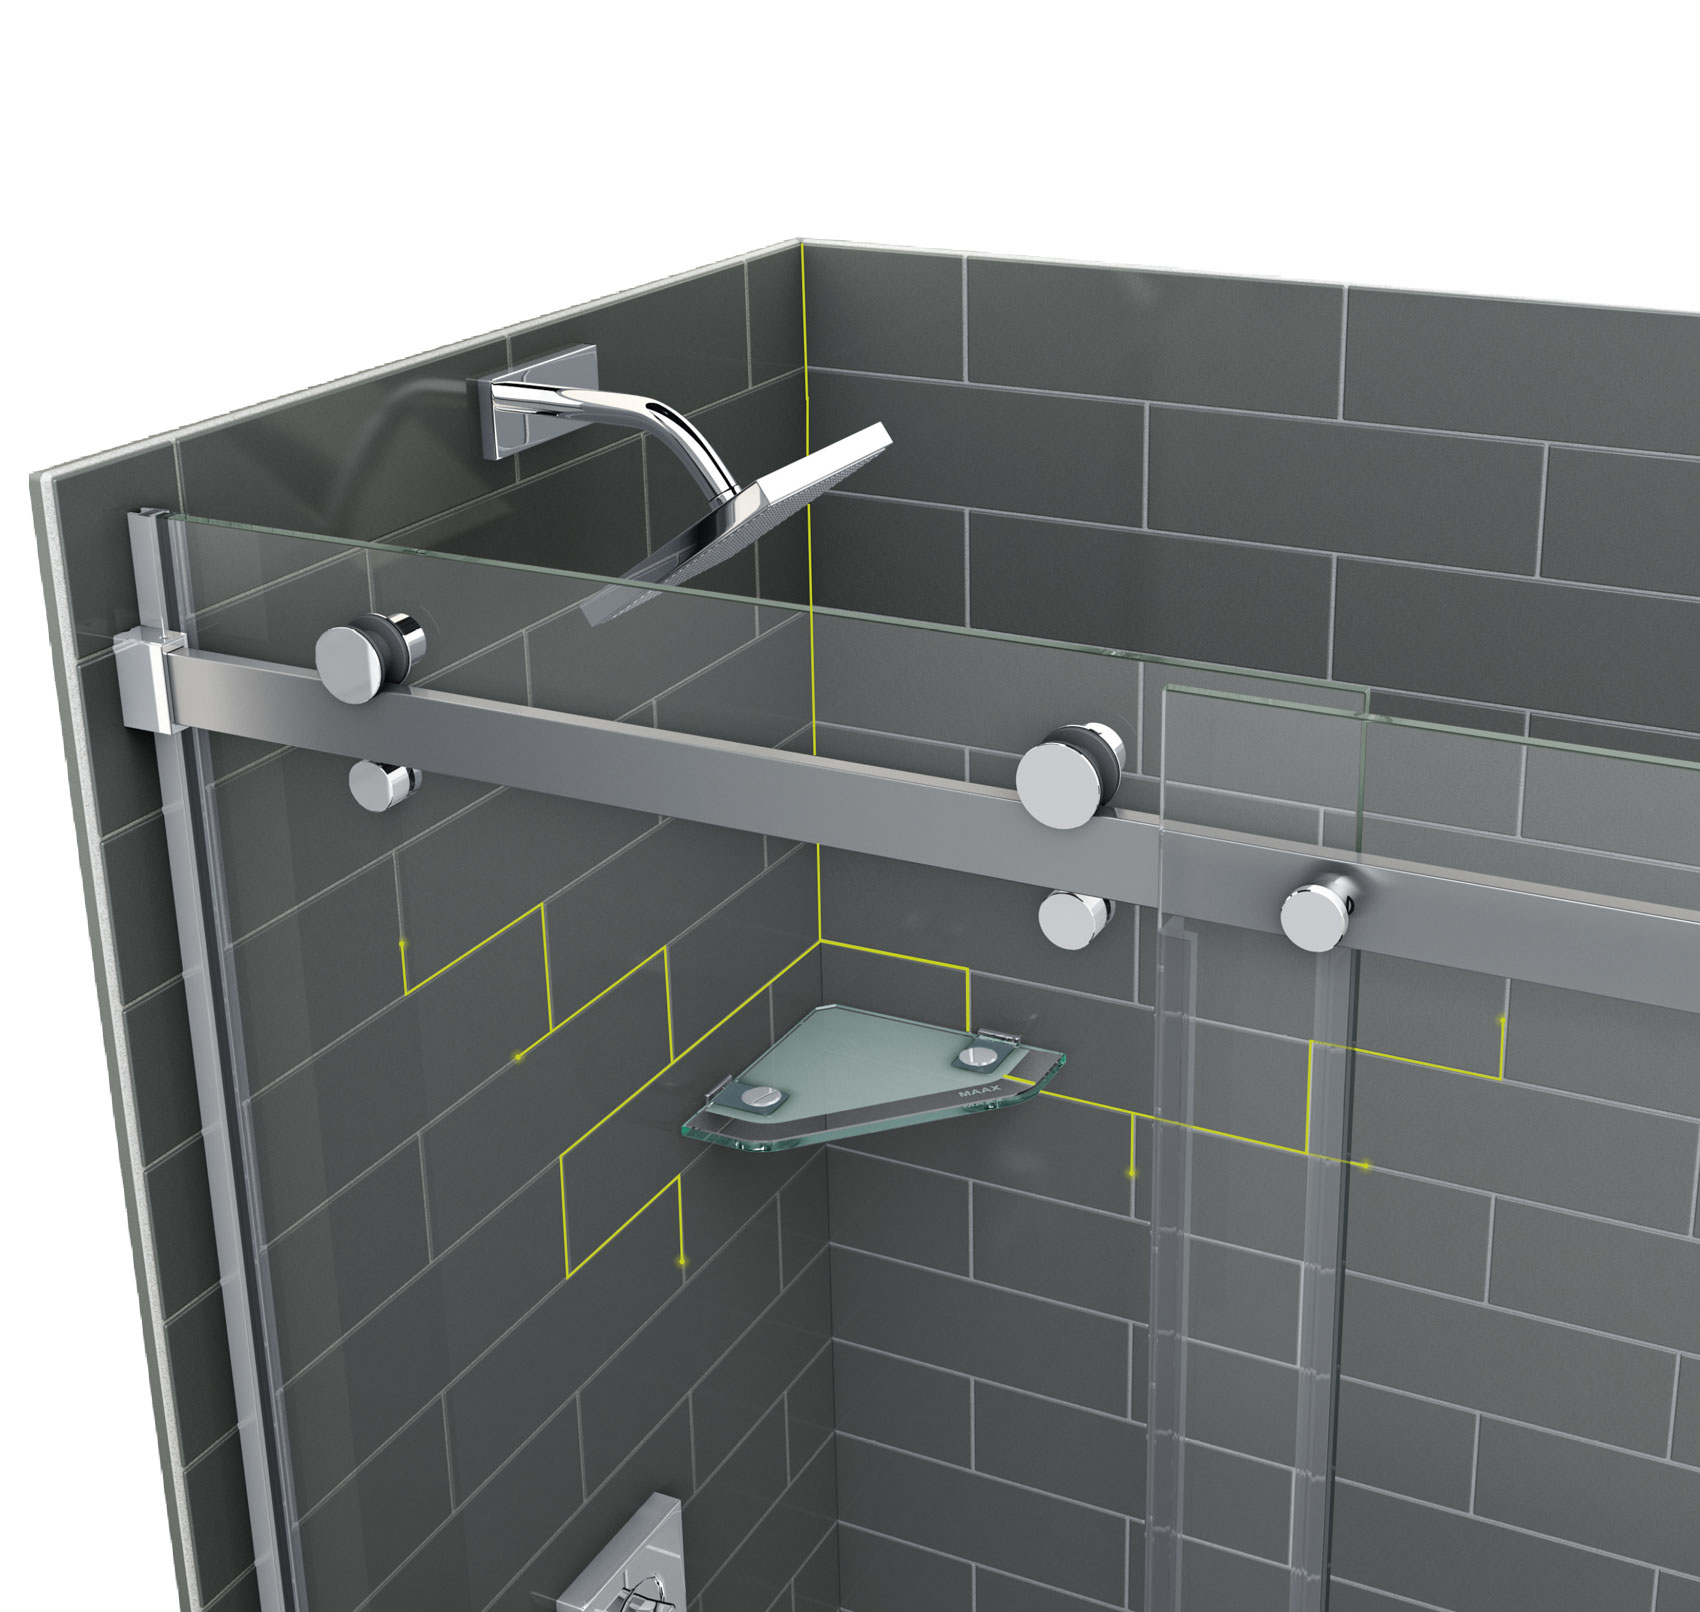 Revolutionary Shower - Bathroom Remodel - Look Like Tiles | by MAAX